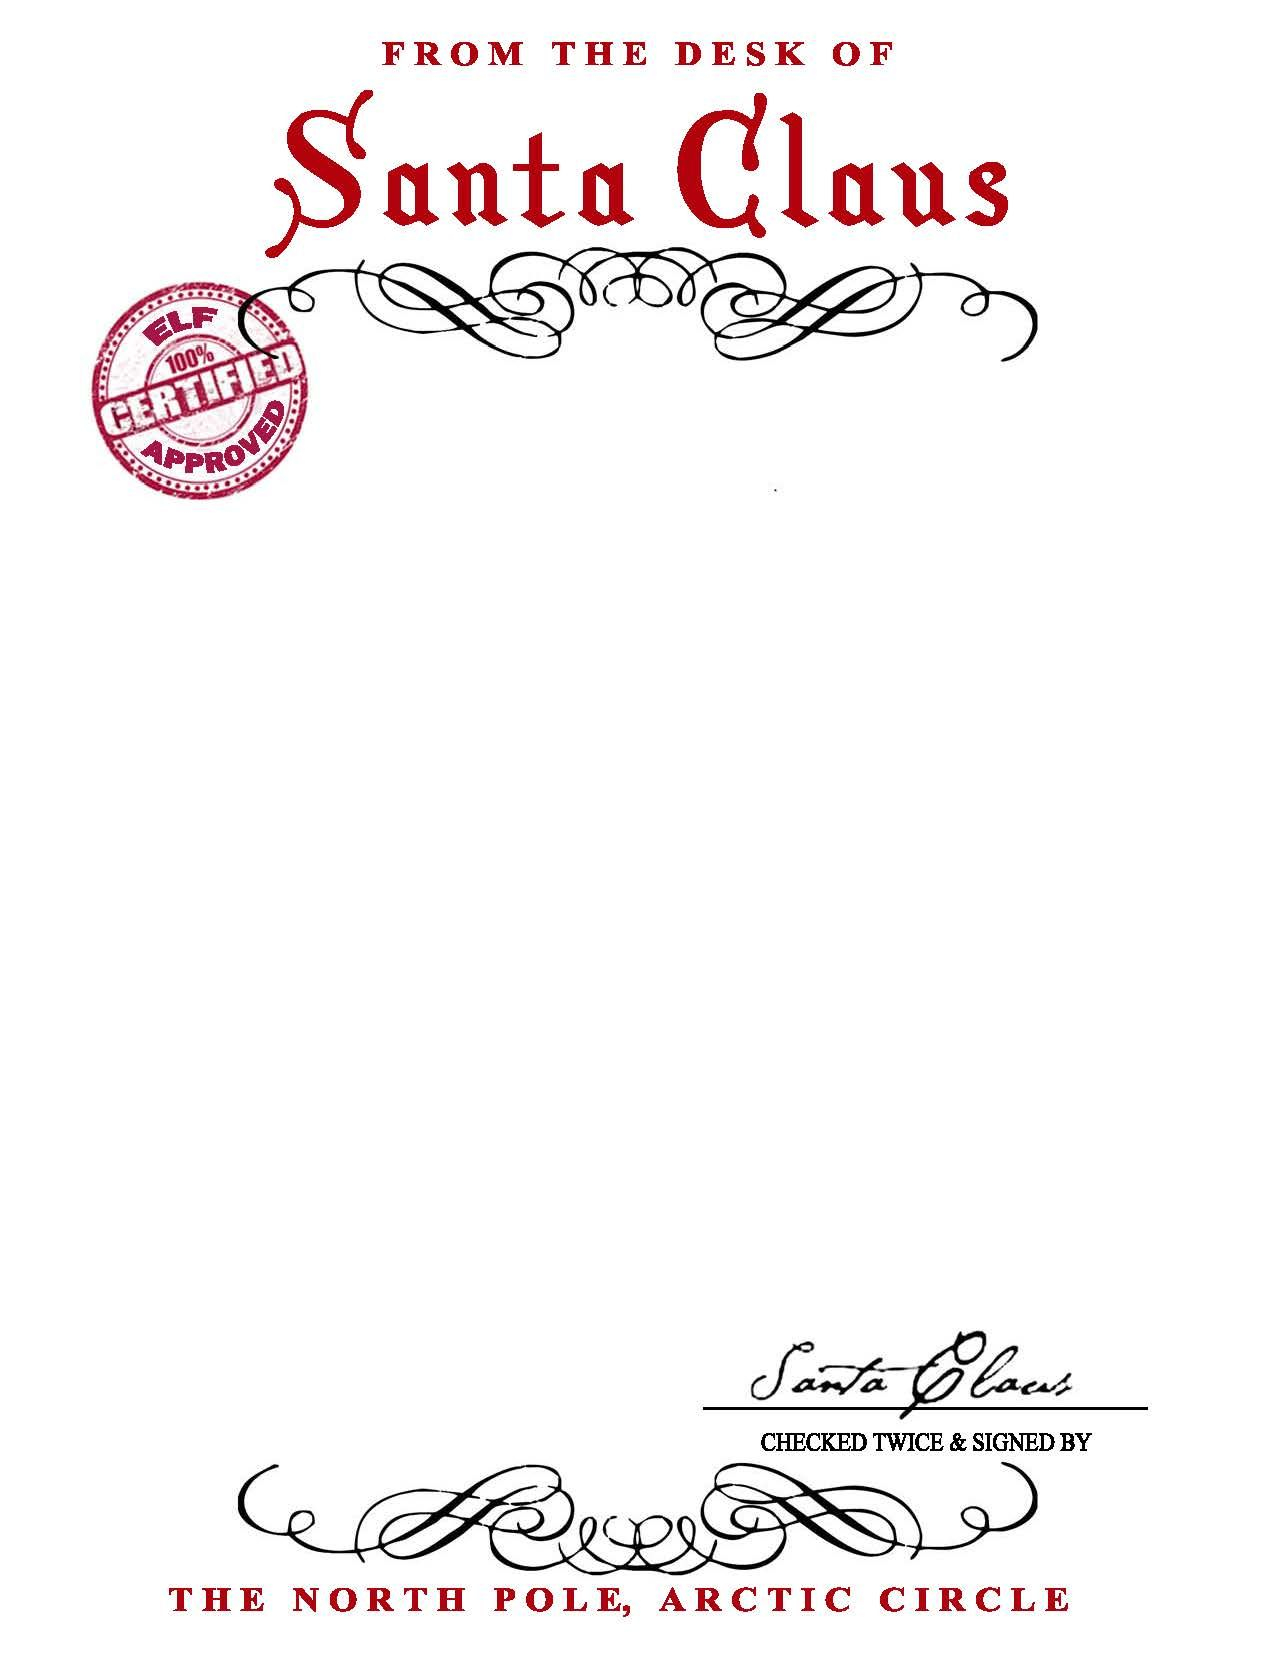 Letter From Santa Template Free Download - Santa Claus Letterhead Will Bring Lots Of Joy to Children